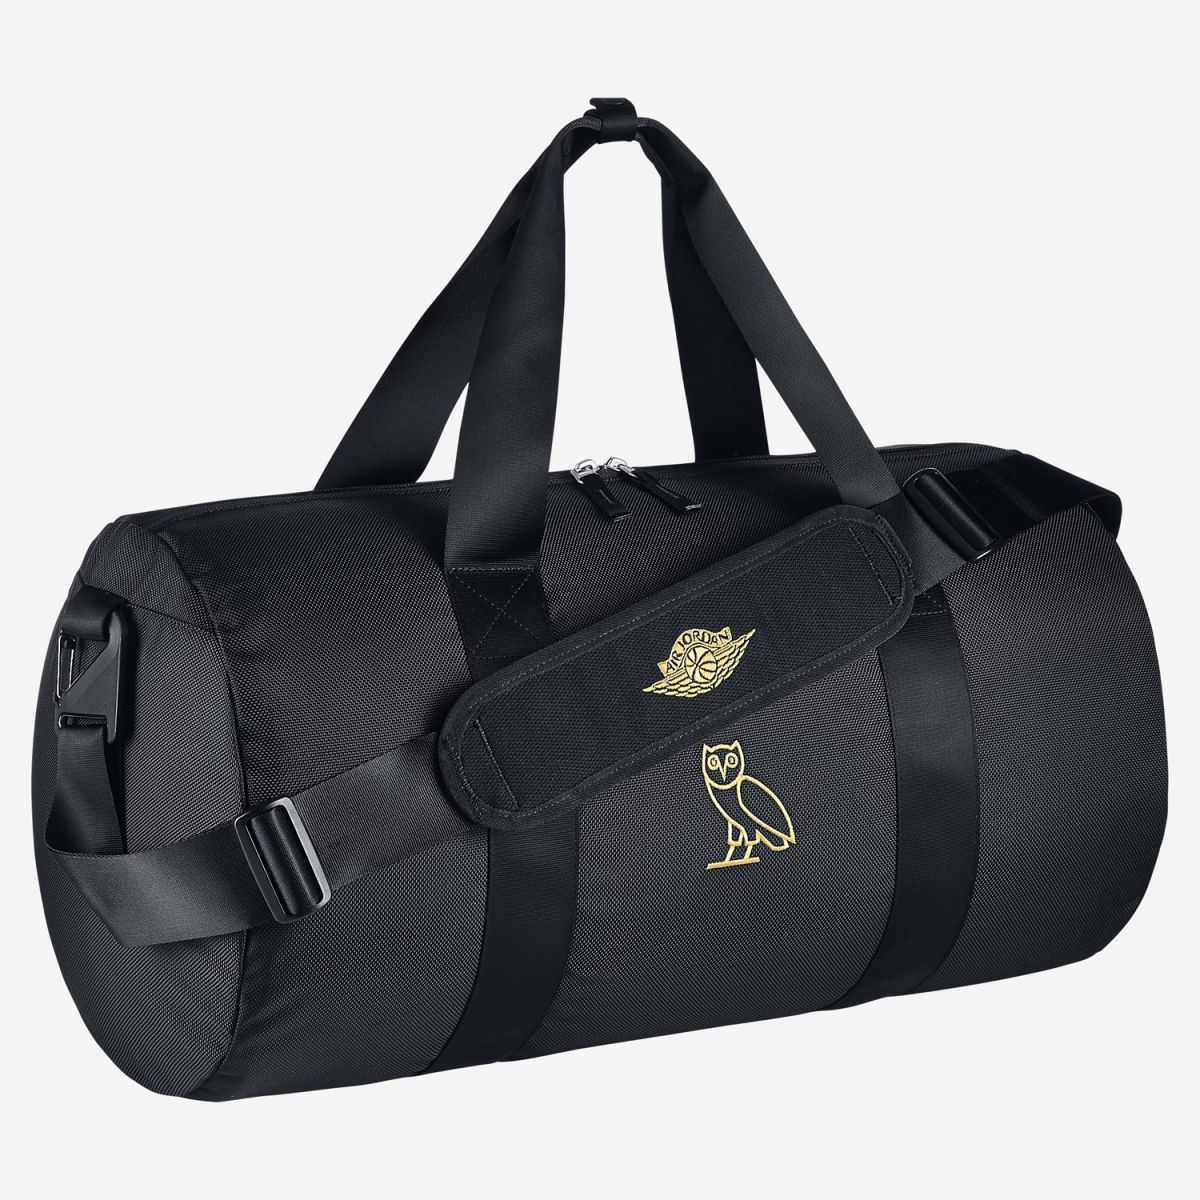 Jordan Brand Unveils the Black OVO Collection | Sole Collector